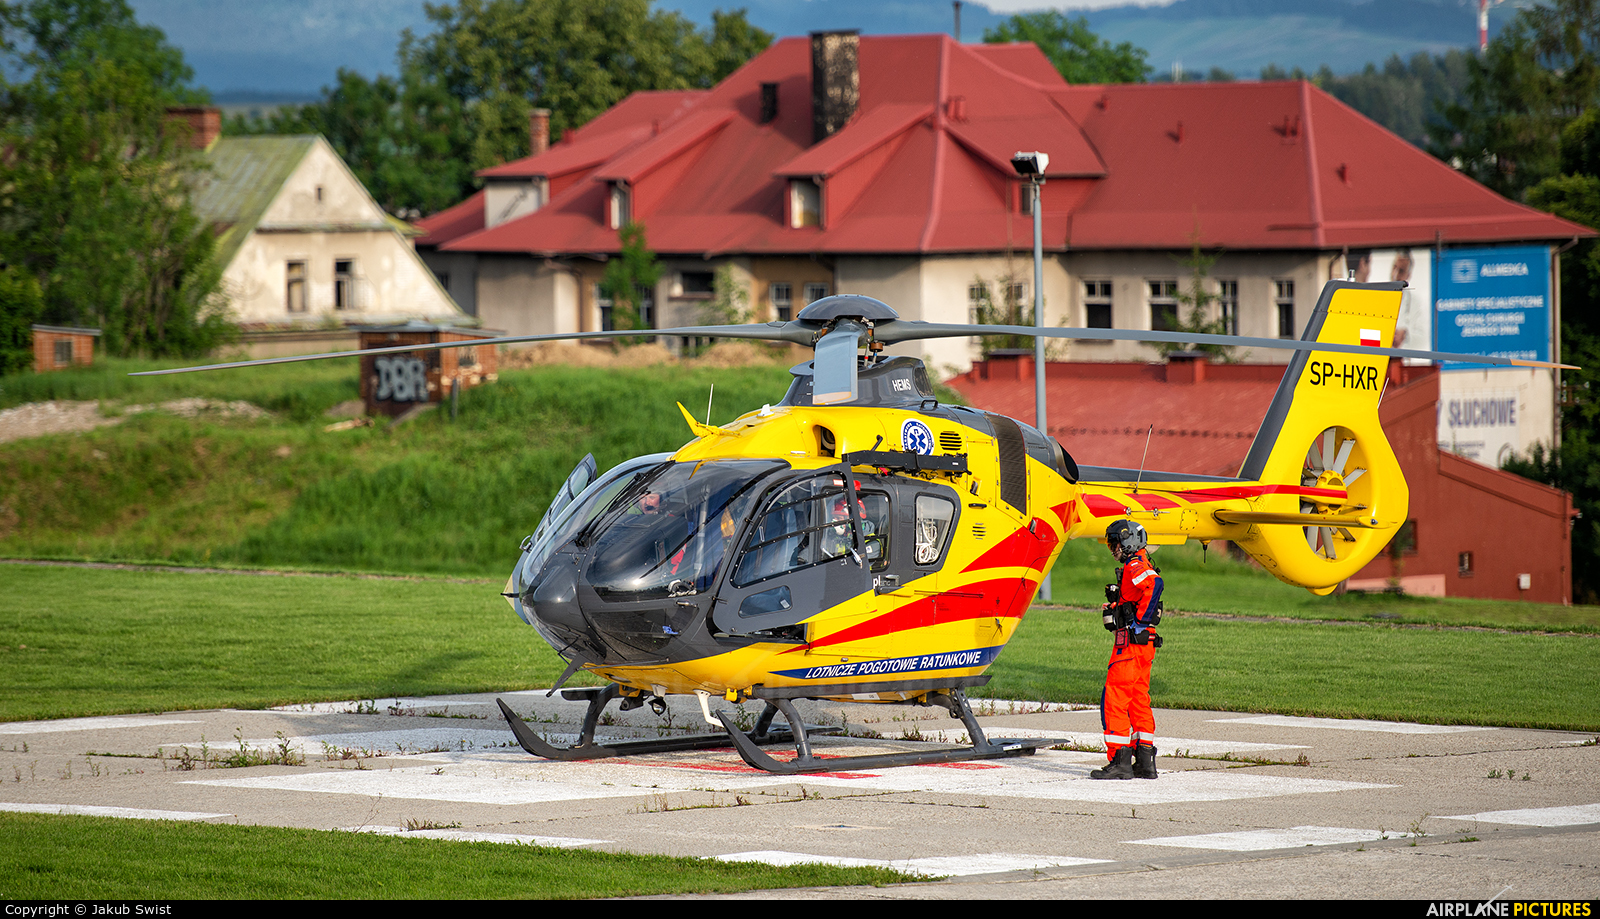 Polish Medical Air Rescue - Lotnicze Pogotowie Ratunkowe SP-HXR aircraft at Nowy Targ